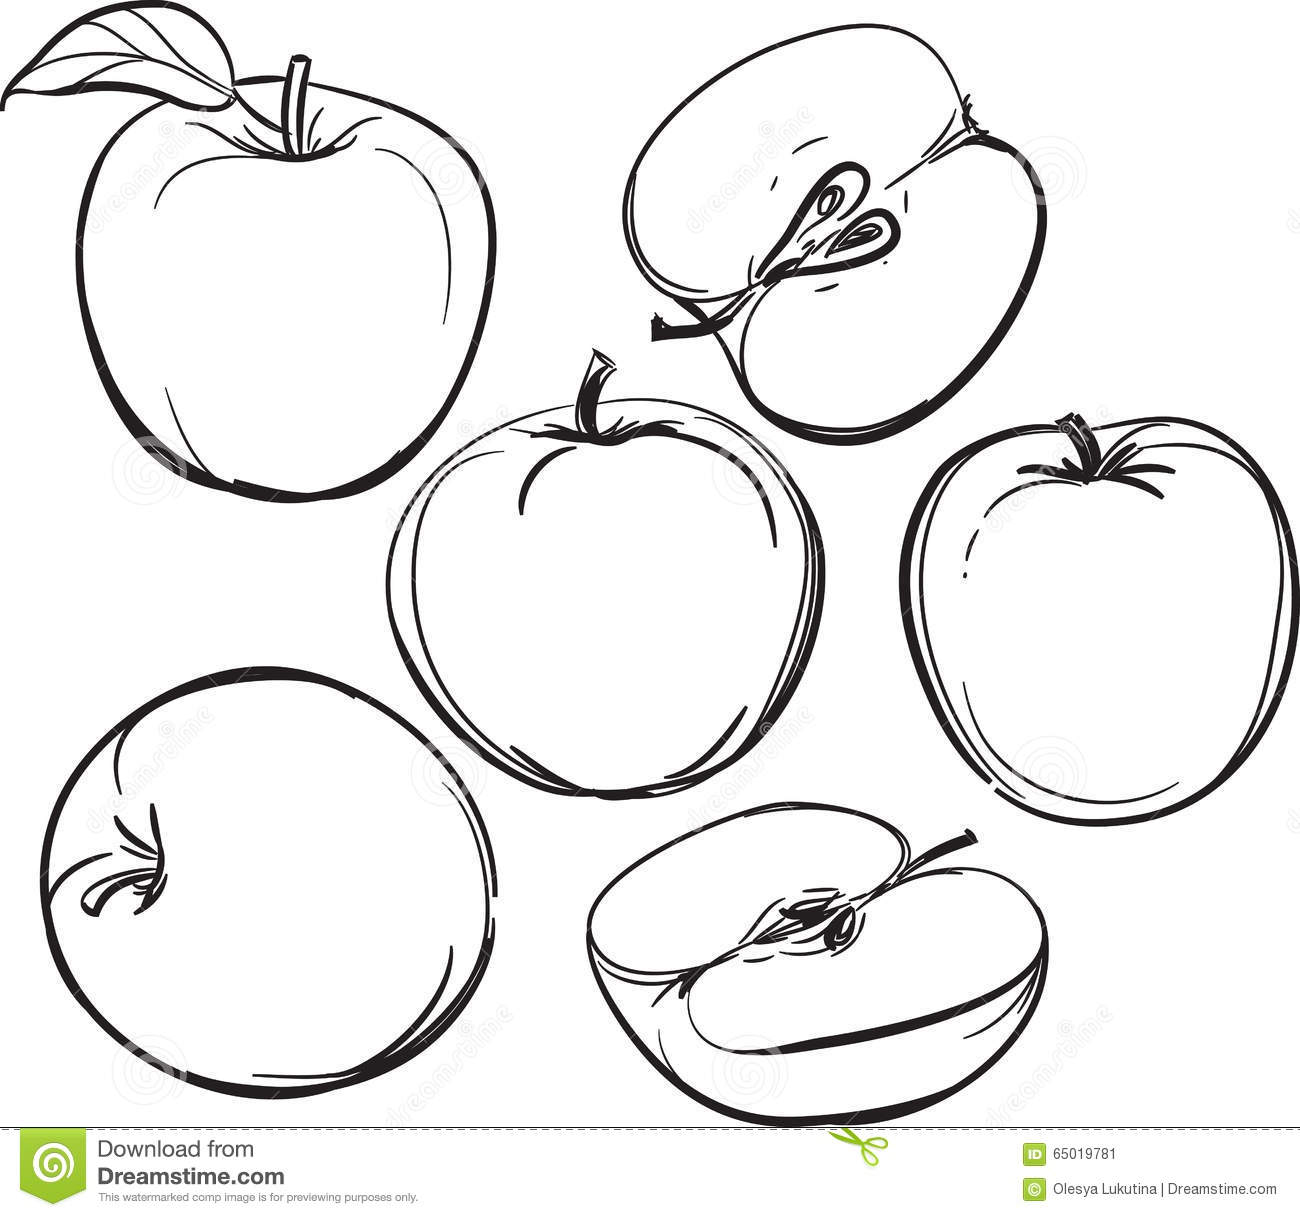 Apple Line Drawing Of Apples On A White Background One